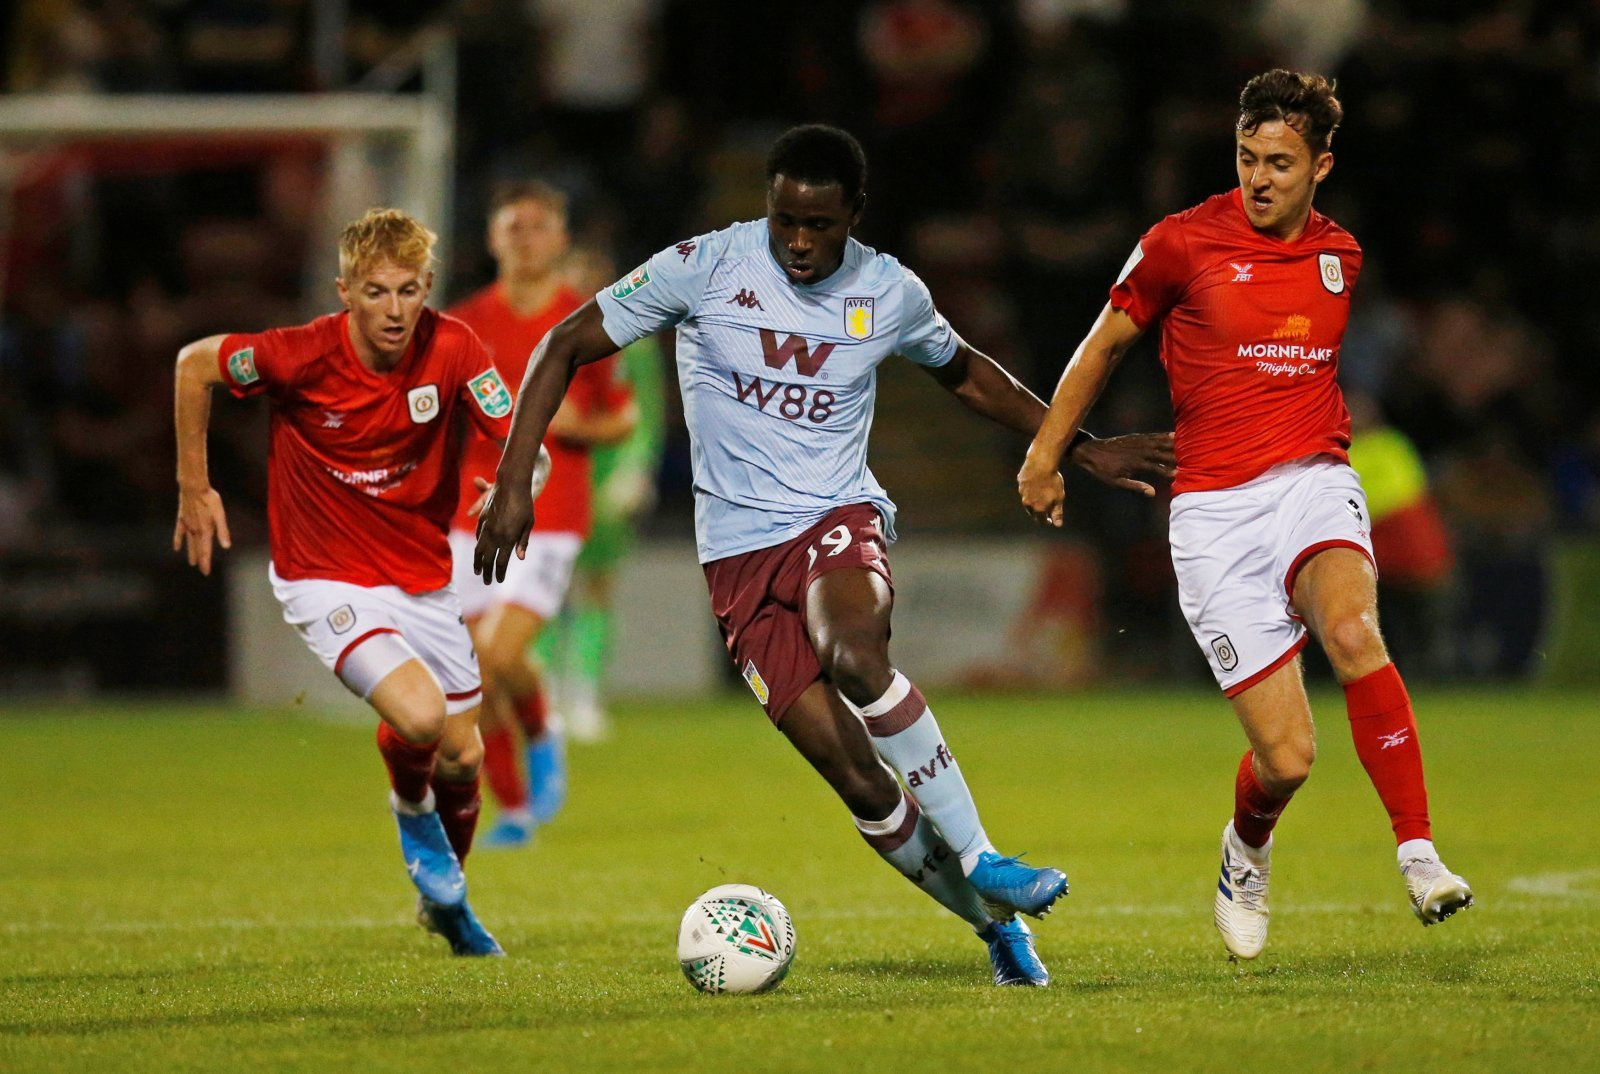 Aston Villa: Contract talks to be opened with Keinan Davis